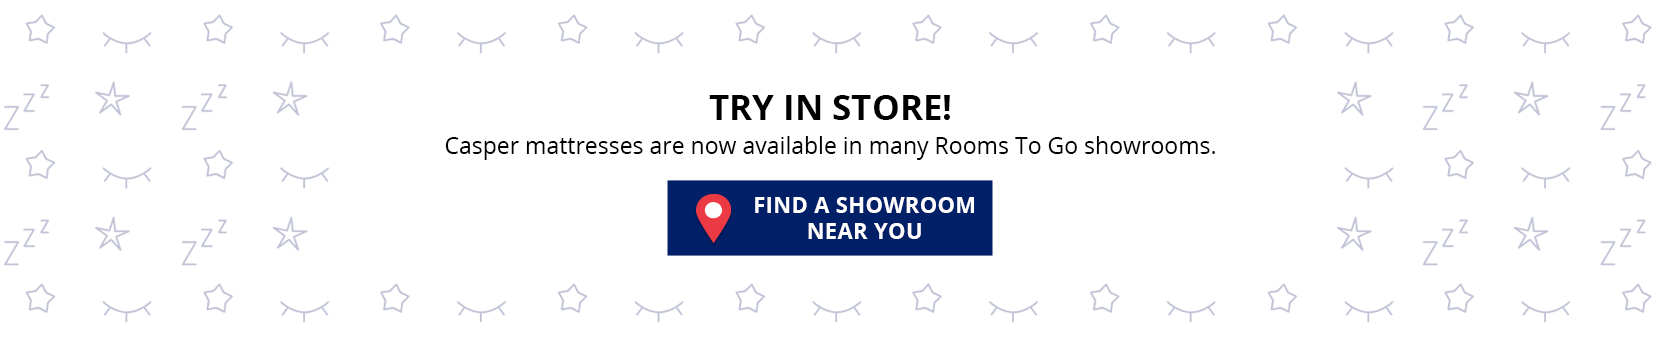 try in store! casper mattresses now conveniently located at a rooms to go showroom. find a showroom near you